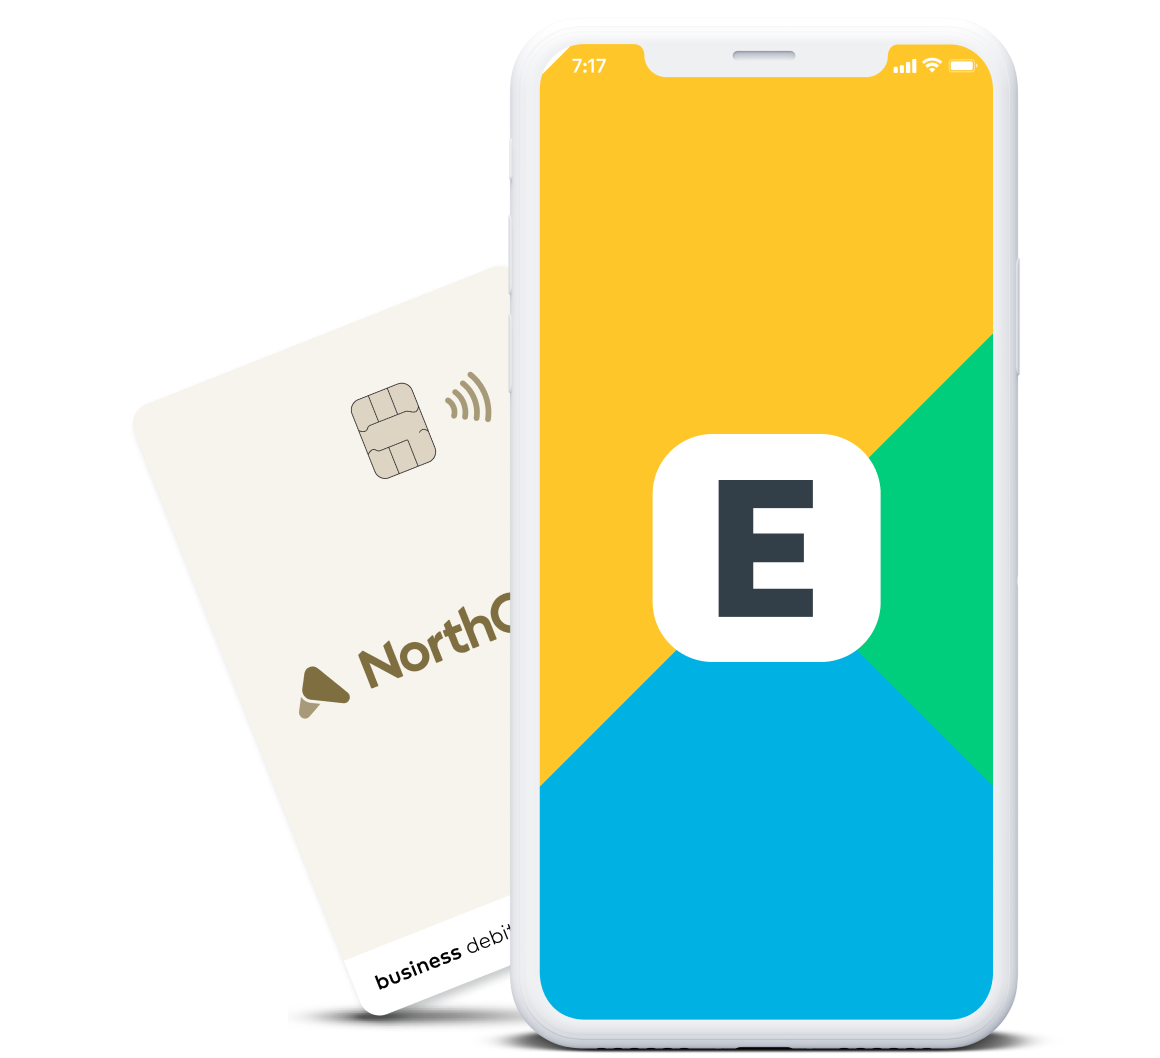 Expensify app logo on a smartphone